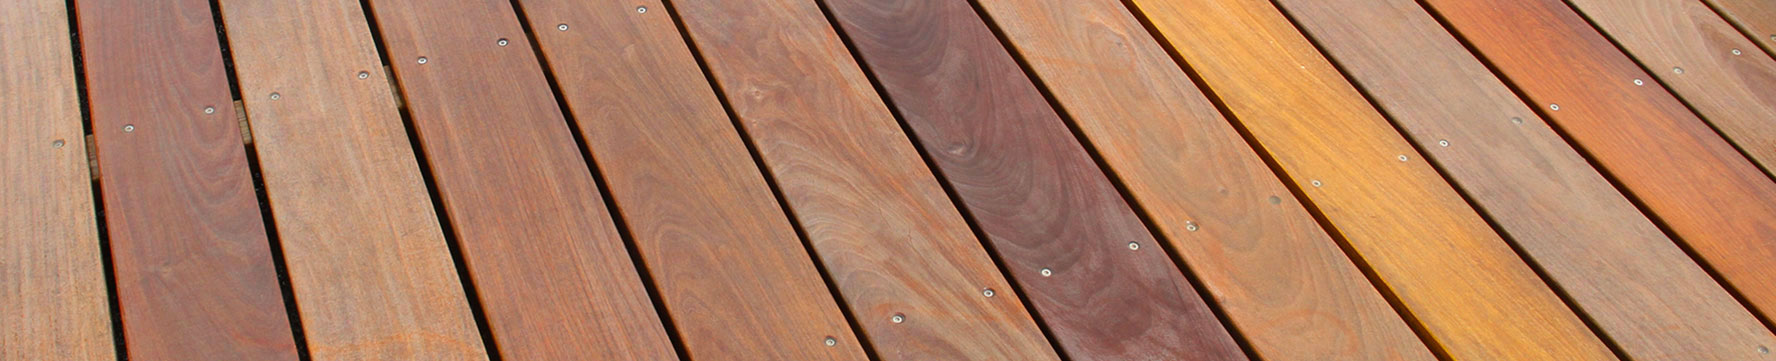 Protection for exterior wood decking